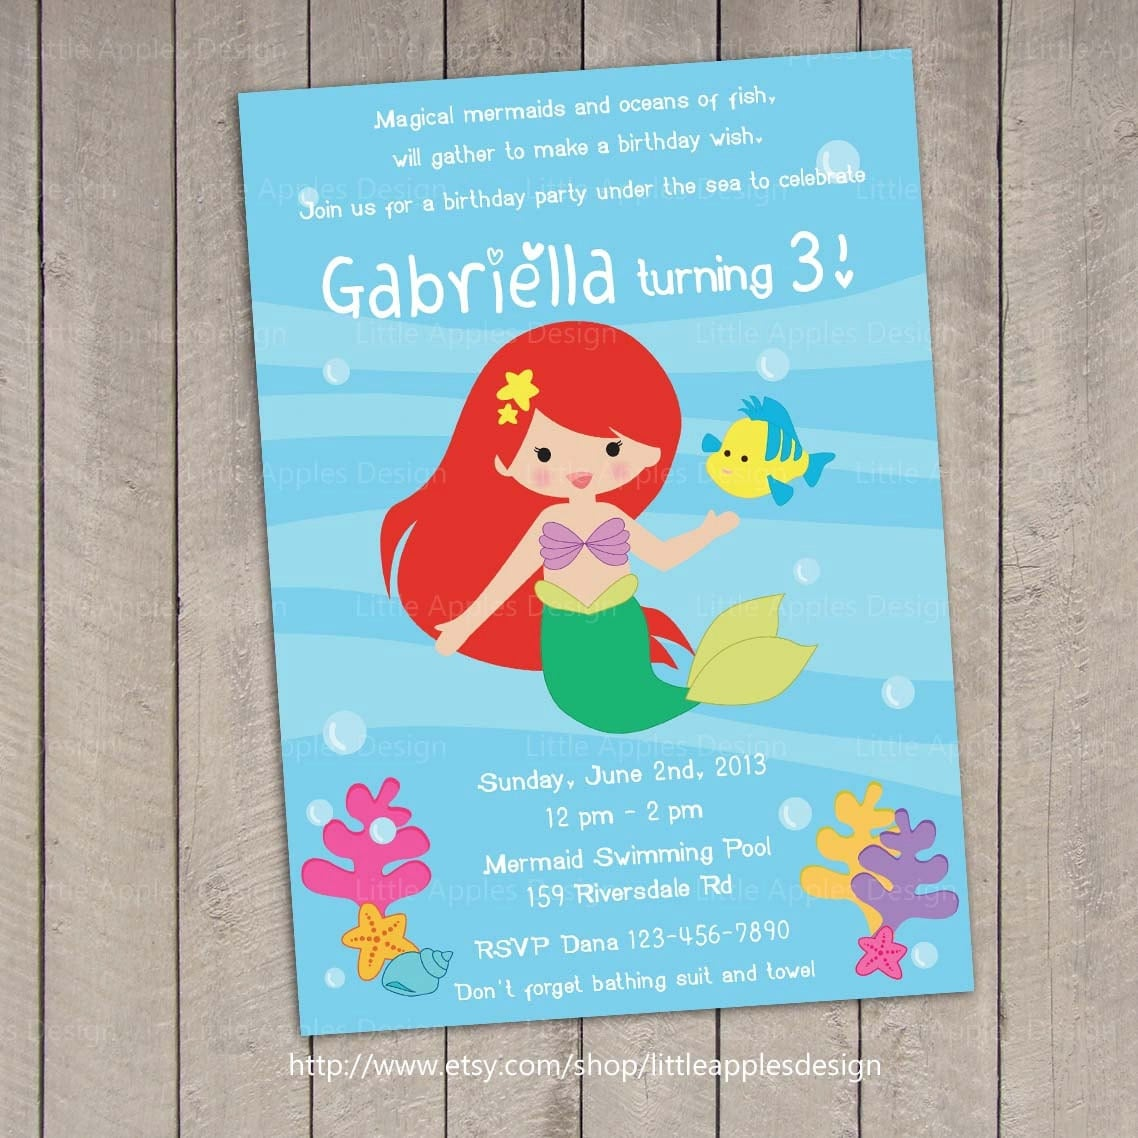 Little Mermaid Party Invitations is the best ideas you have to choose for invitation example